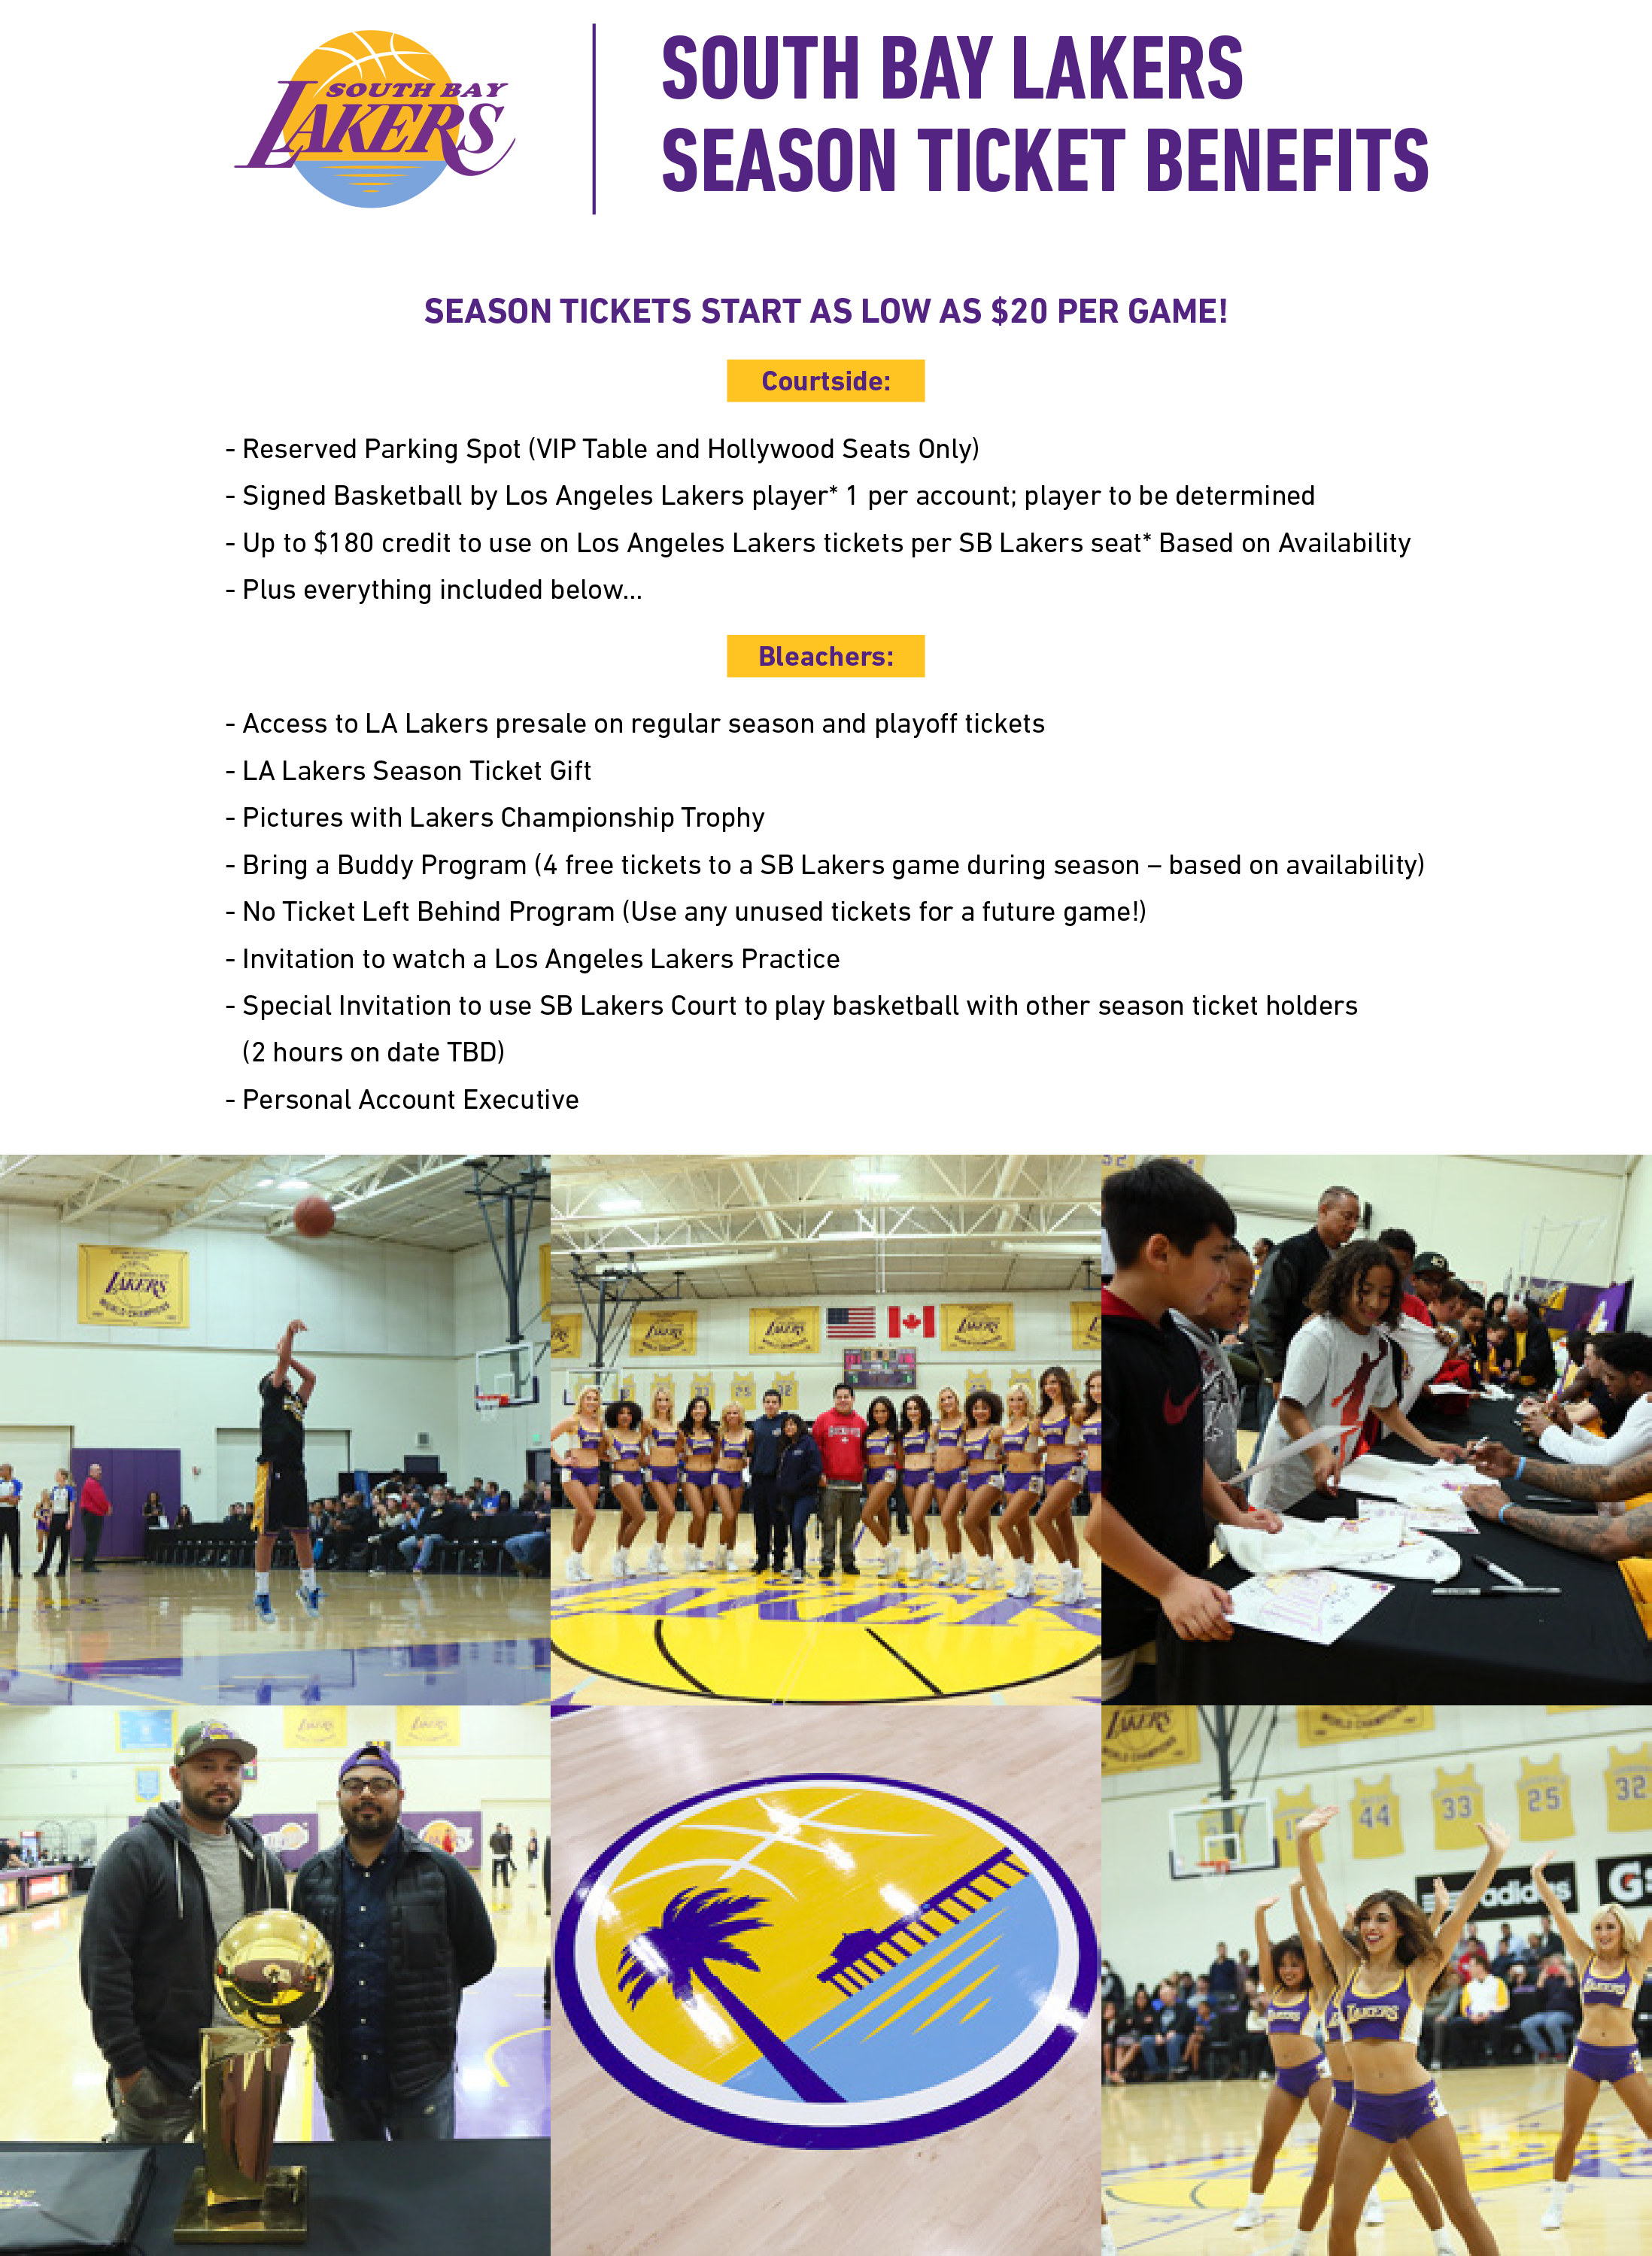 South Bay Lakers Season Ticket Member Benefits